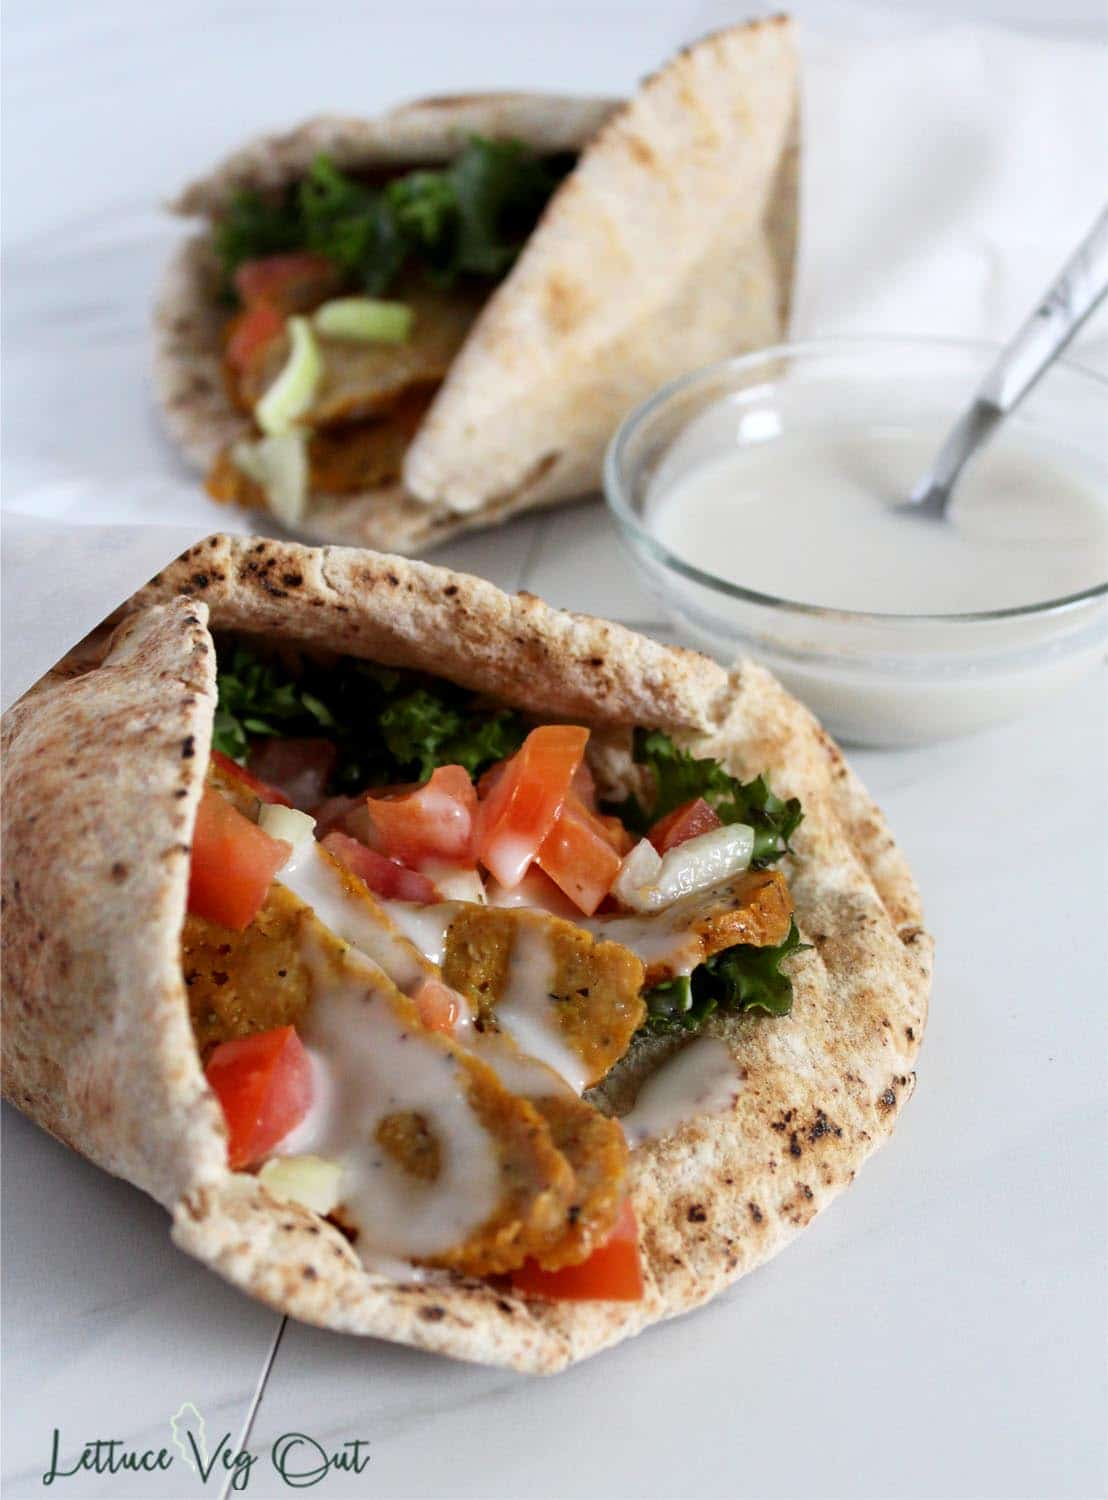 Homemade Vegan Donair Wraps Donair Sauce Meat Recipe